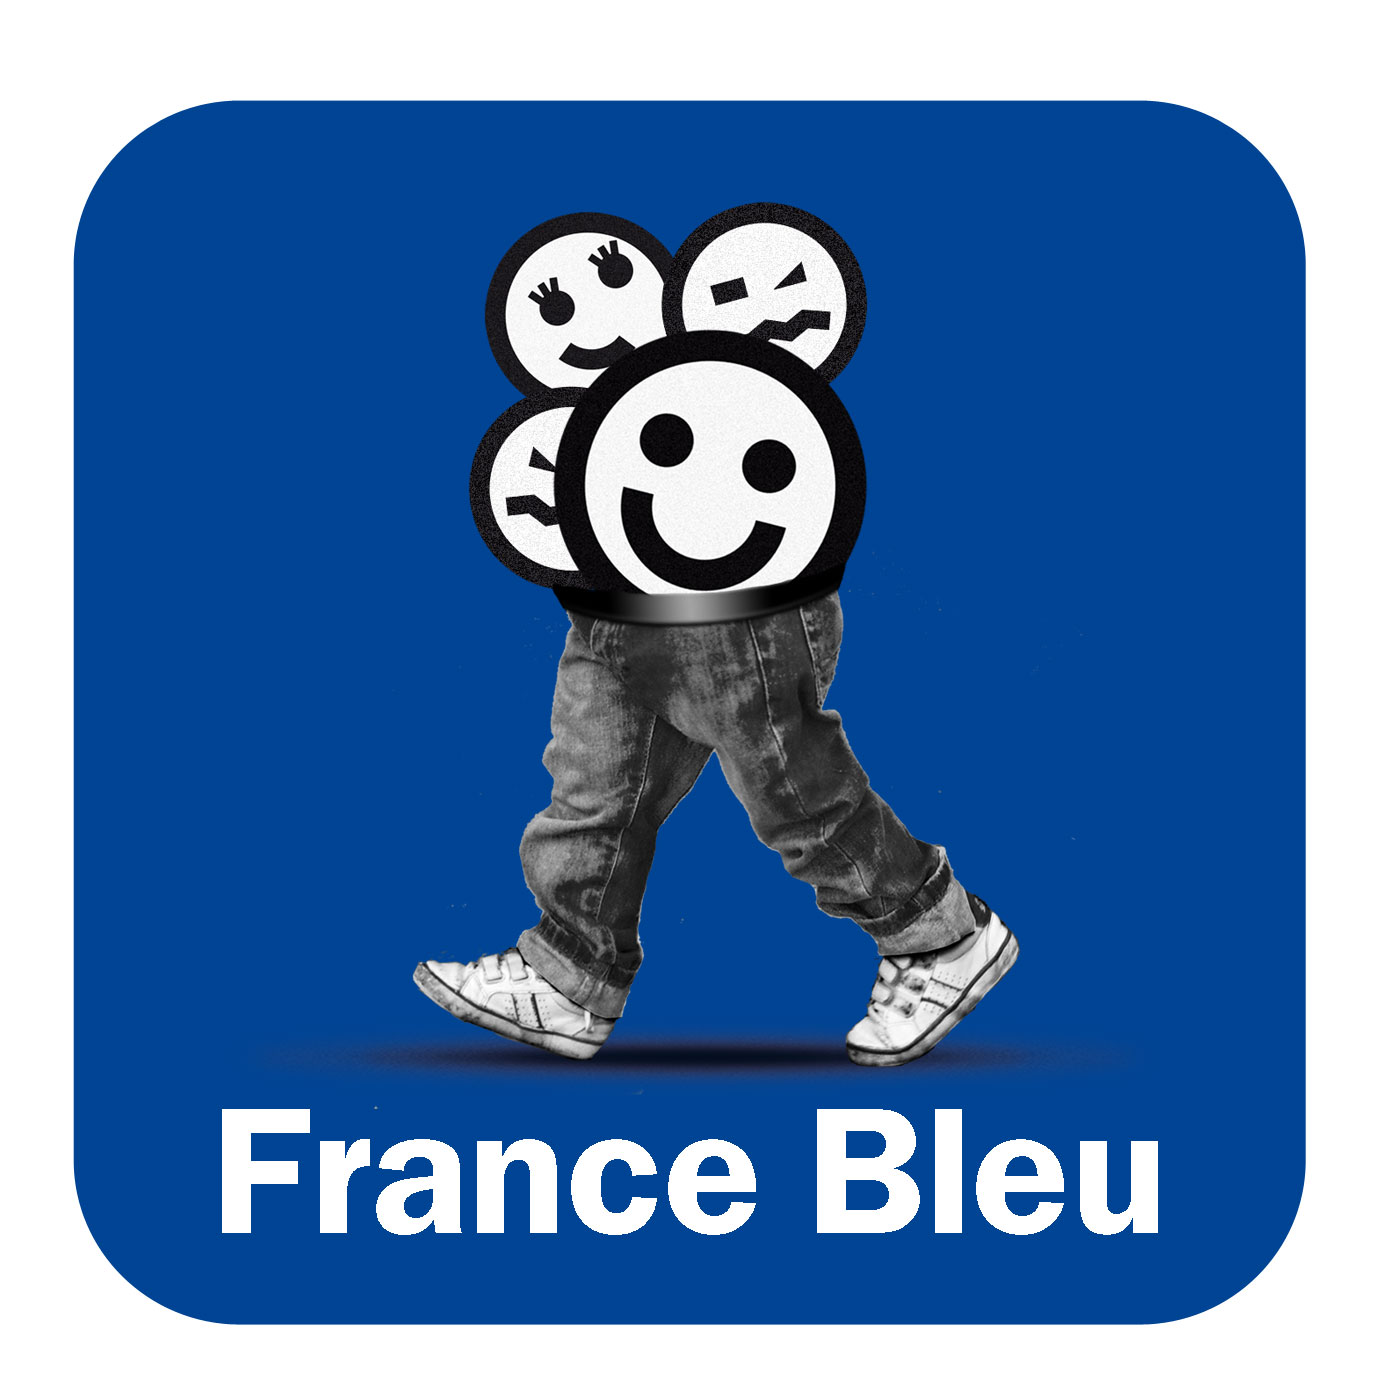 Les experts animaux France Bleu Azur